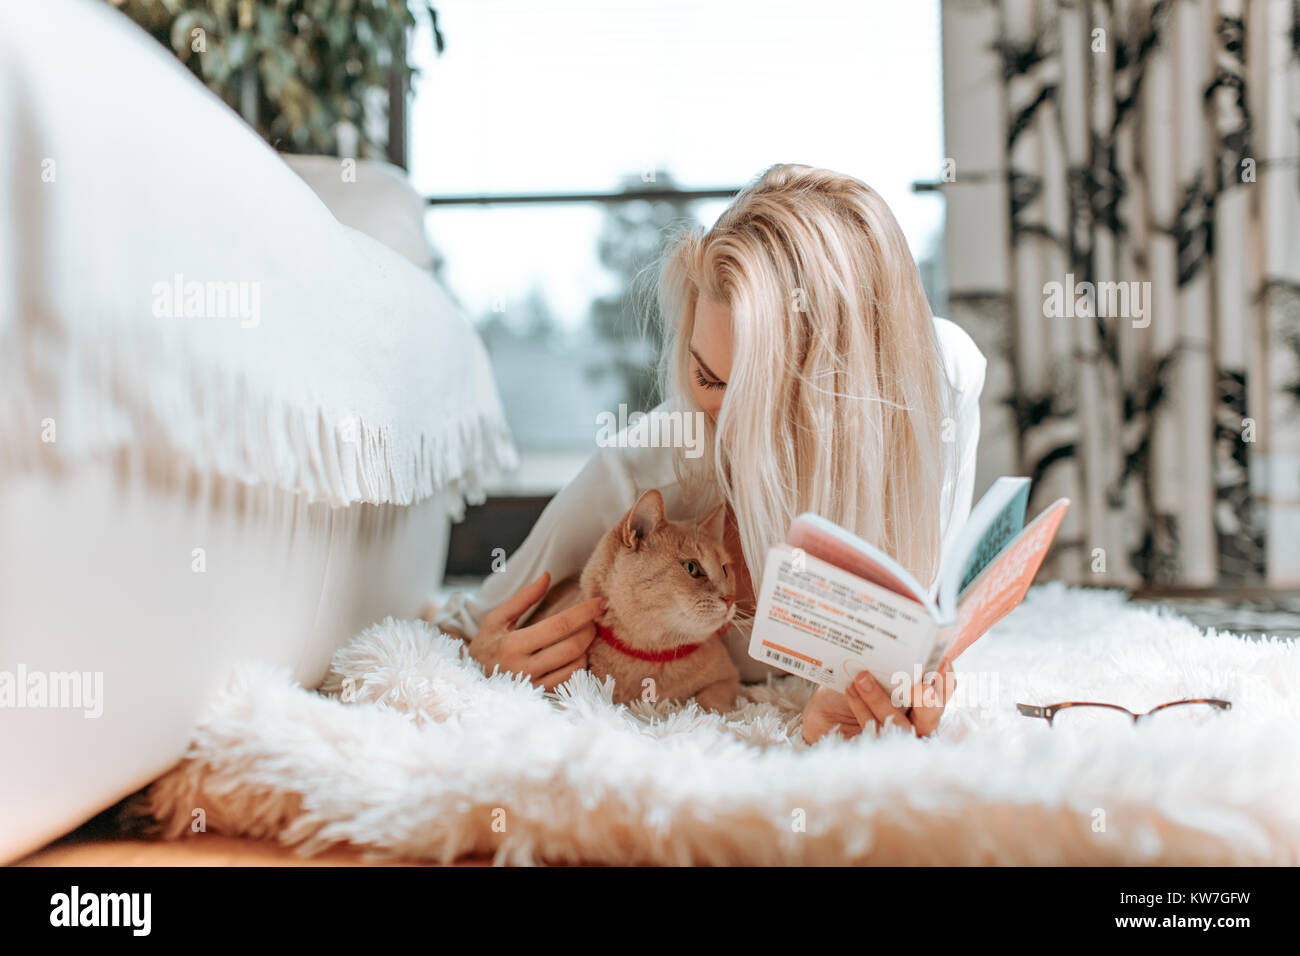 Beautiful young blonde female student studying or reading a fascinating book novel, on her white, leather sofa - Stock Image